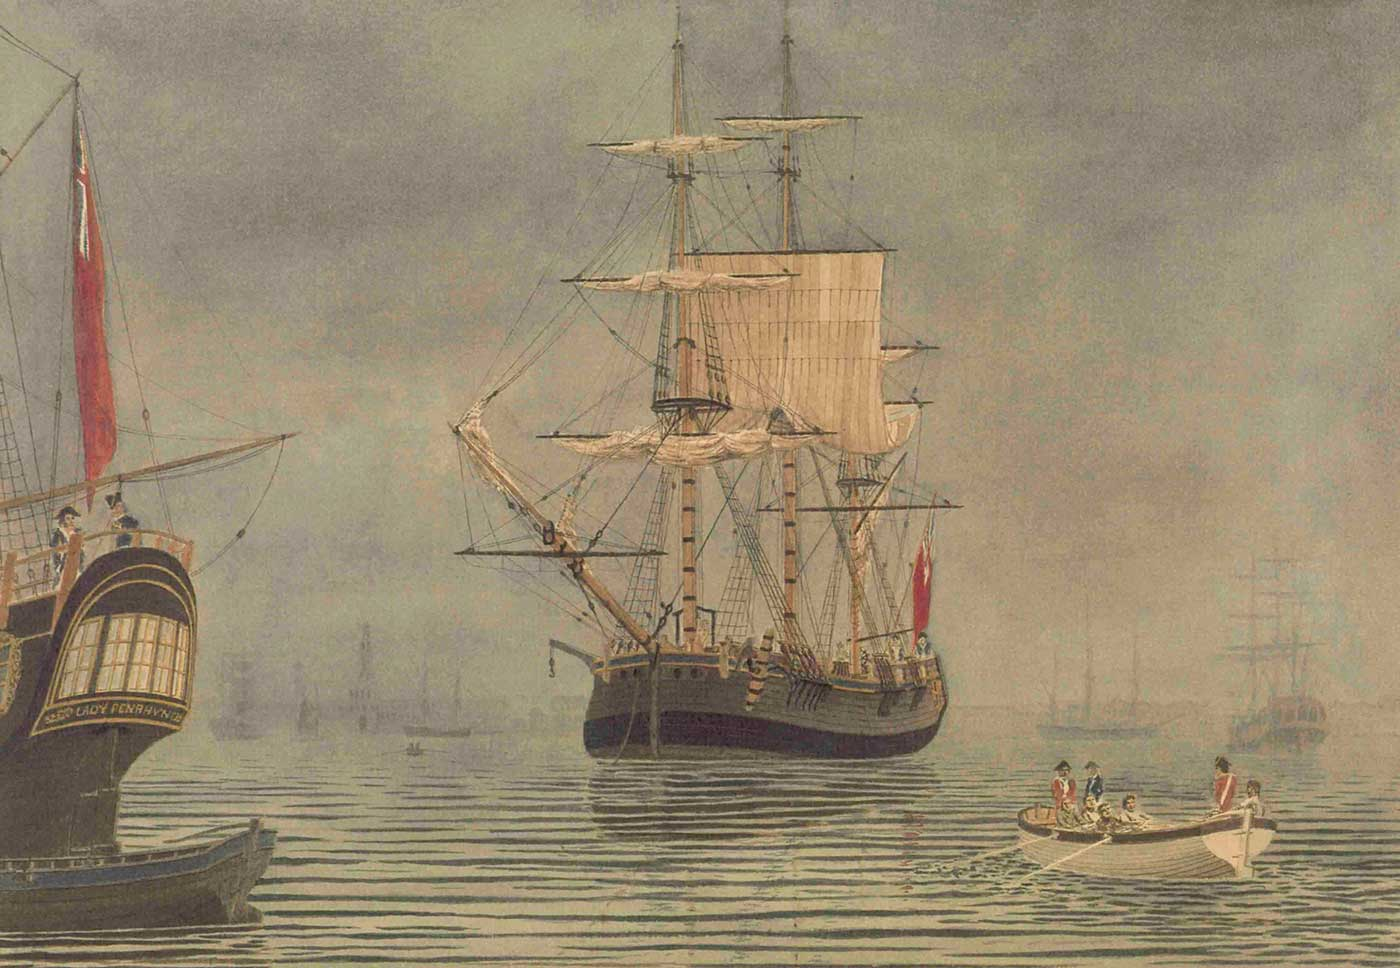 Painting of 18th Century sailing ships in a harbour. - click to view larger image